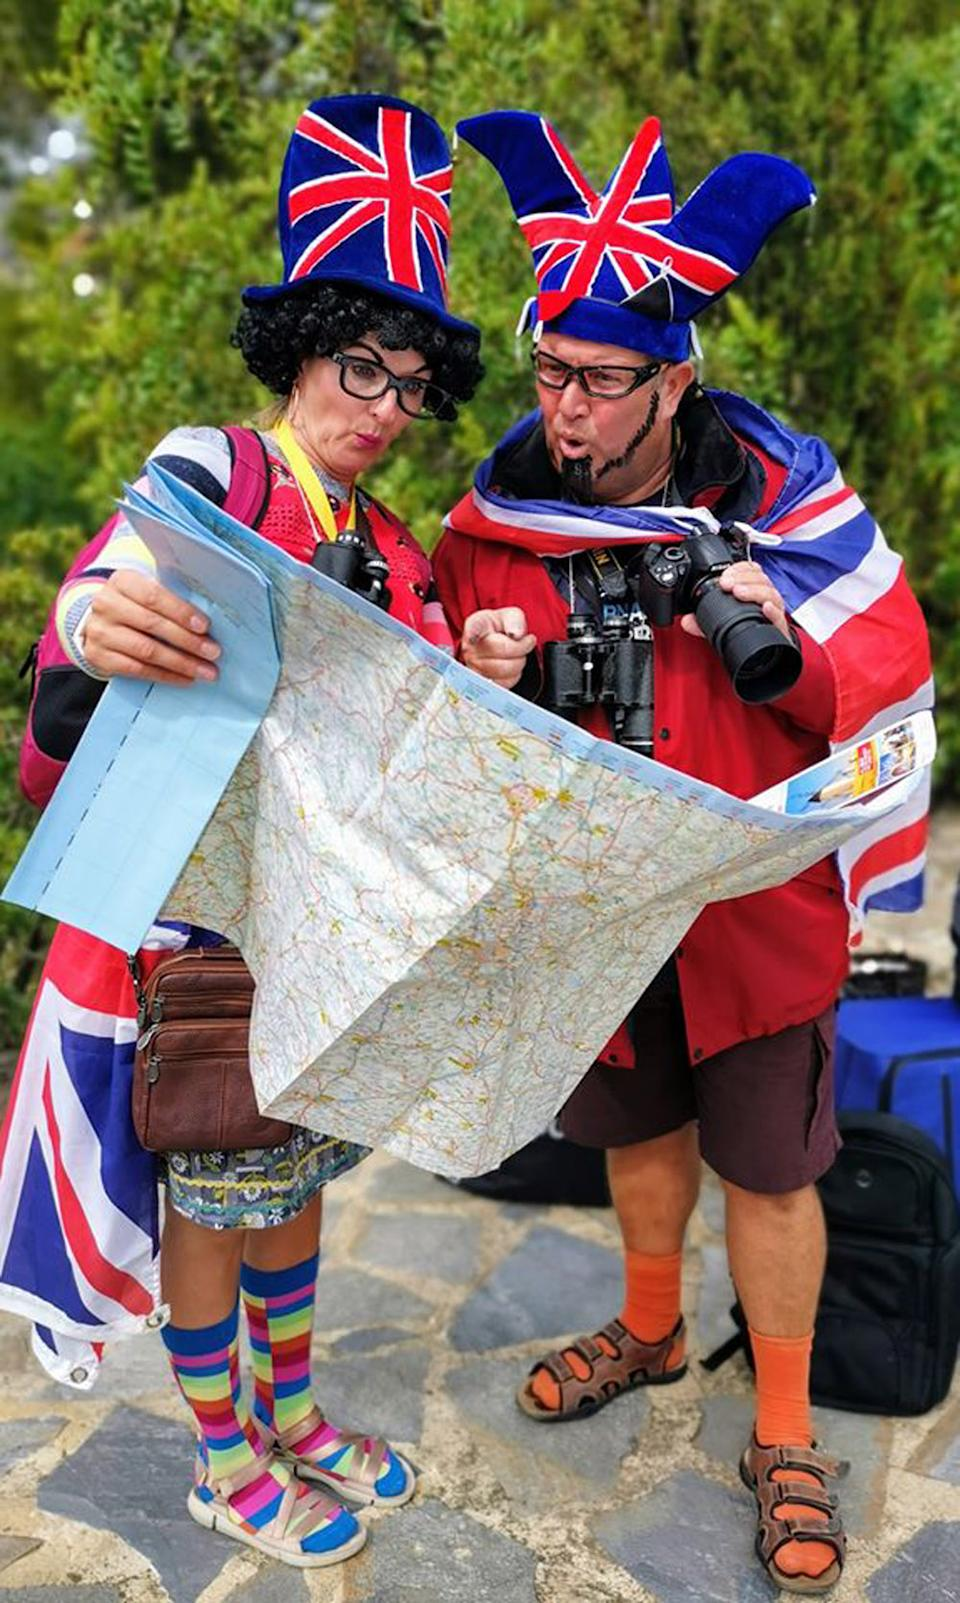 Jo and Pete's 'tourists in London' themed costumes (PA Real Life/Collect)